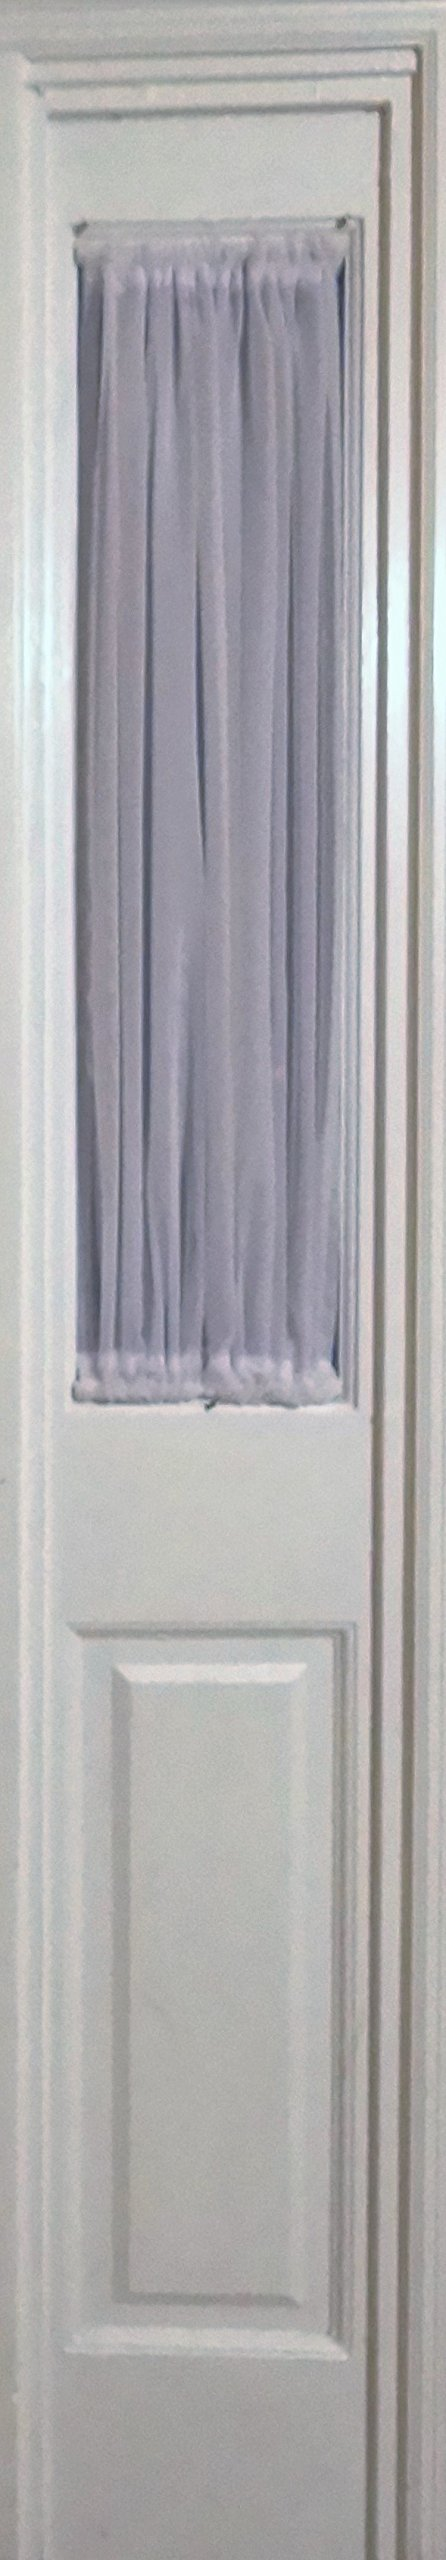 curtains with front size surprisingw glamorous sidelight frontoor of for interior image doors surprising photos curtain door best window ideas full ideasiy over